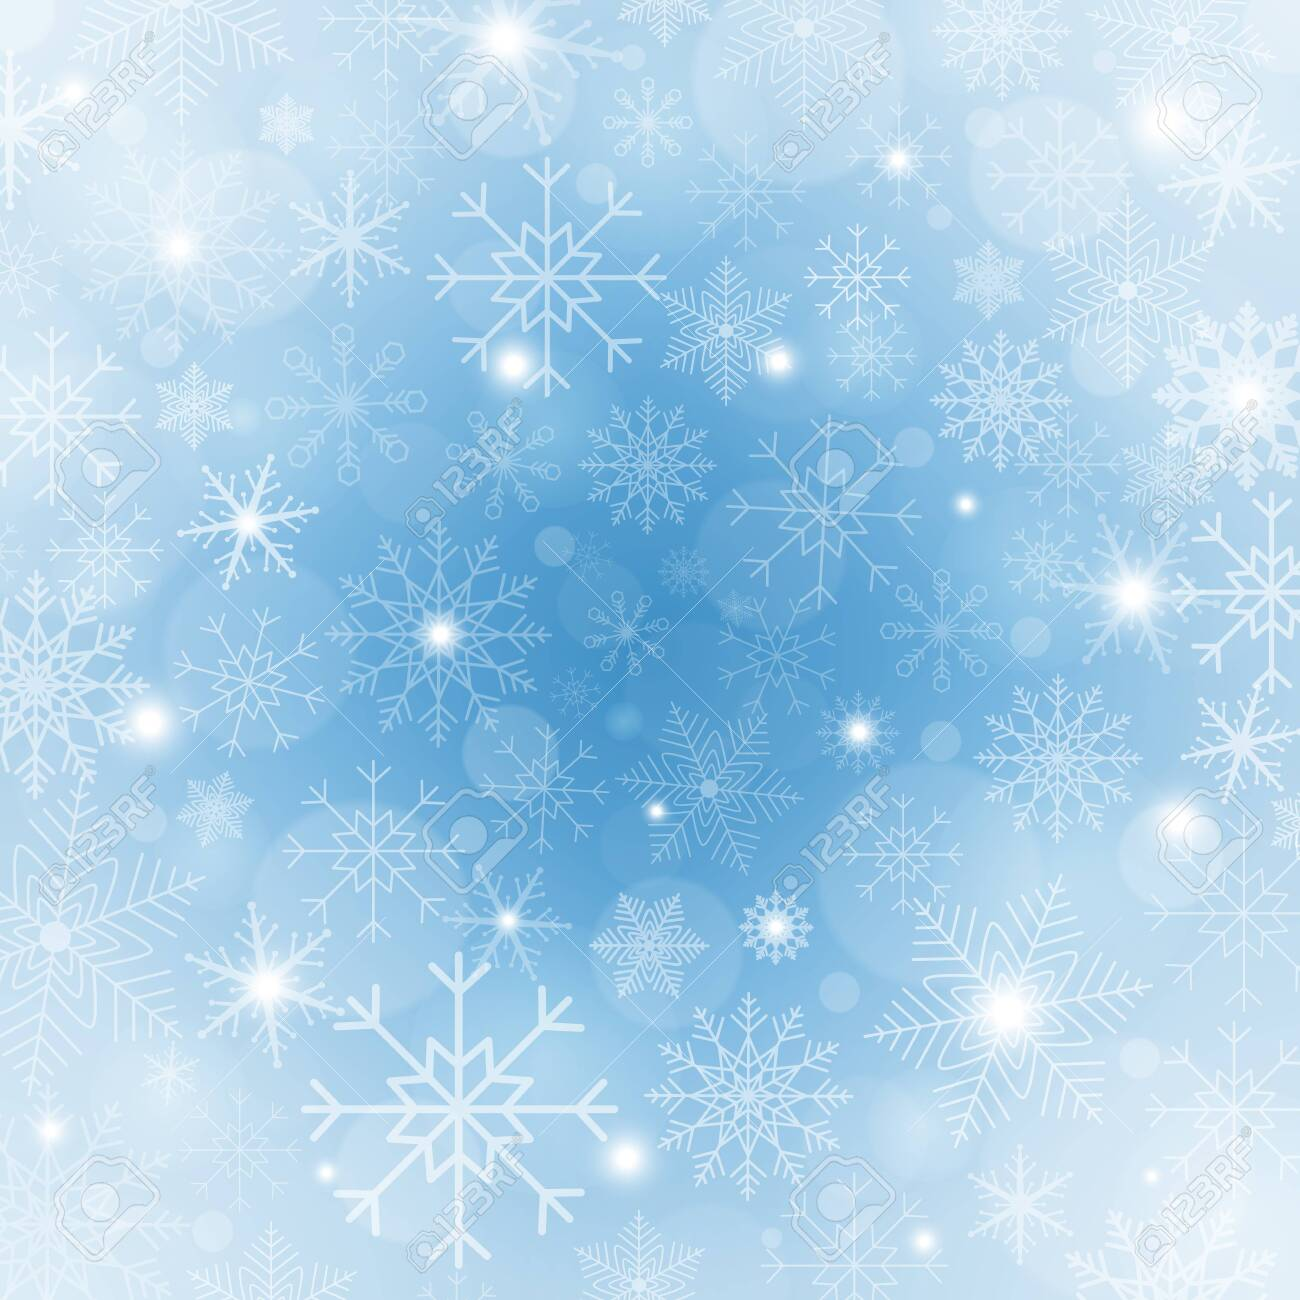 Winter blue background with snowflakes. Bright Christmas frame with snowflakes, sparkles and stars. Winter holiday template. New year design. Vector Illustration - 138024168